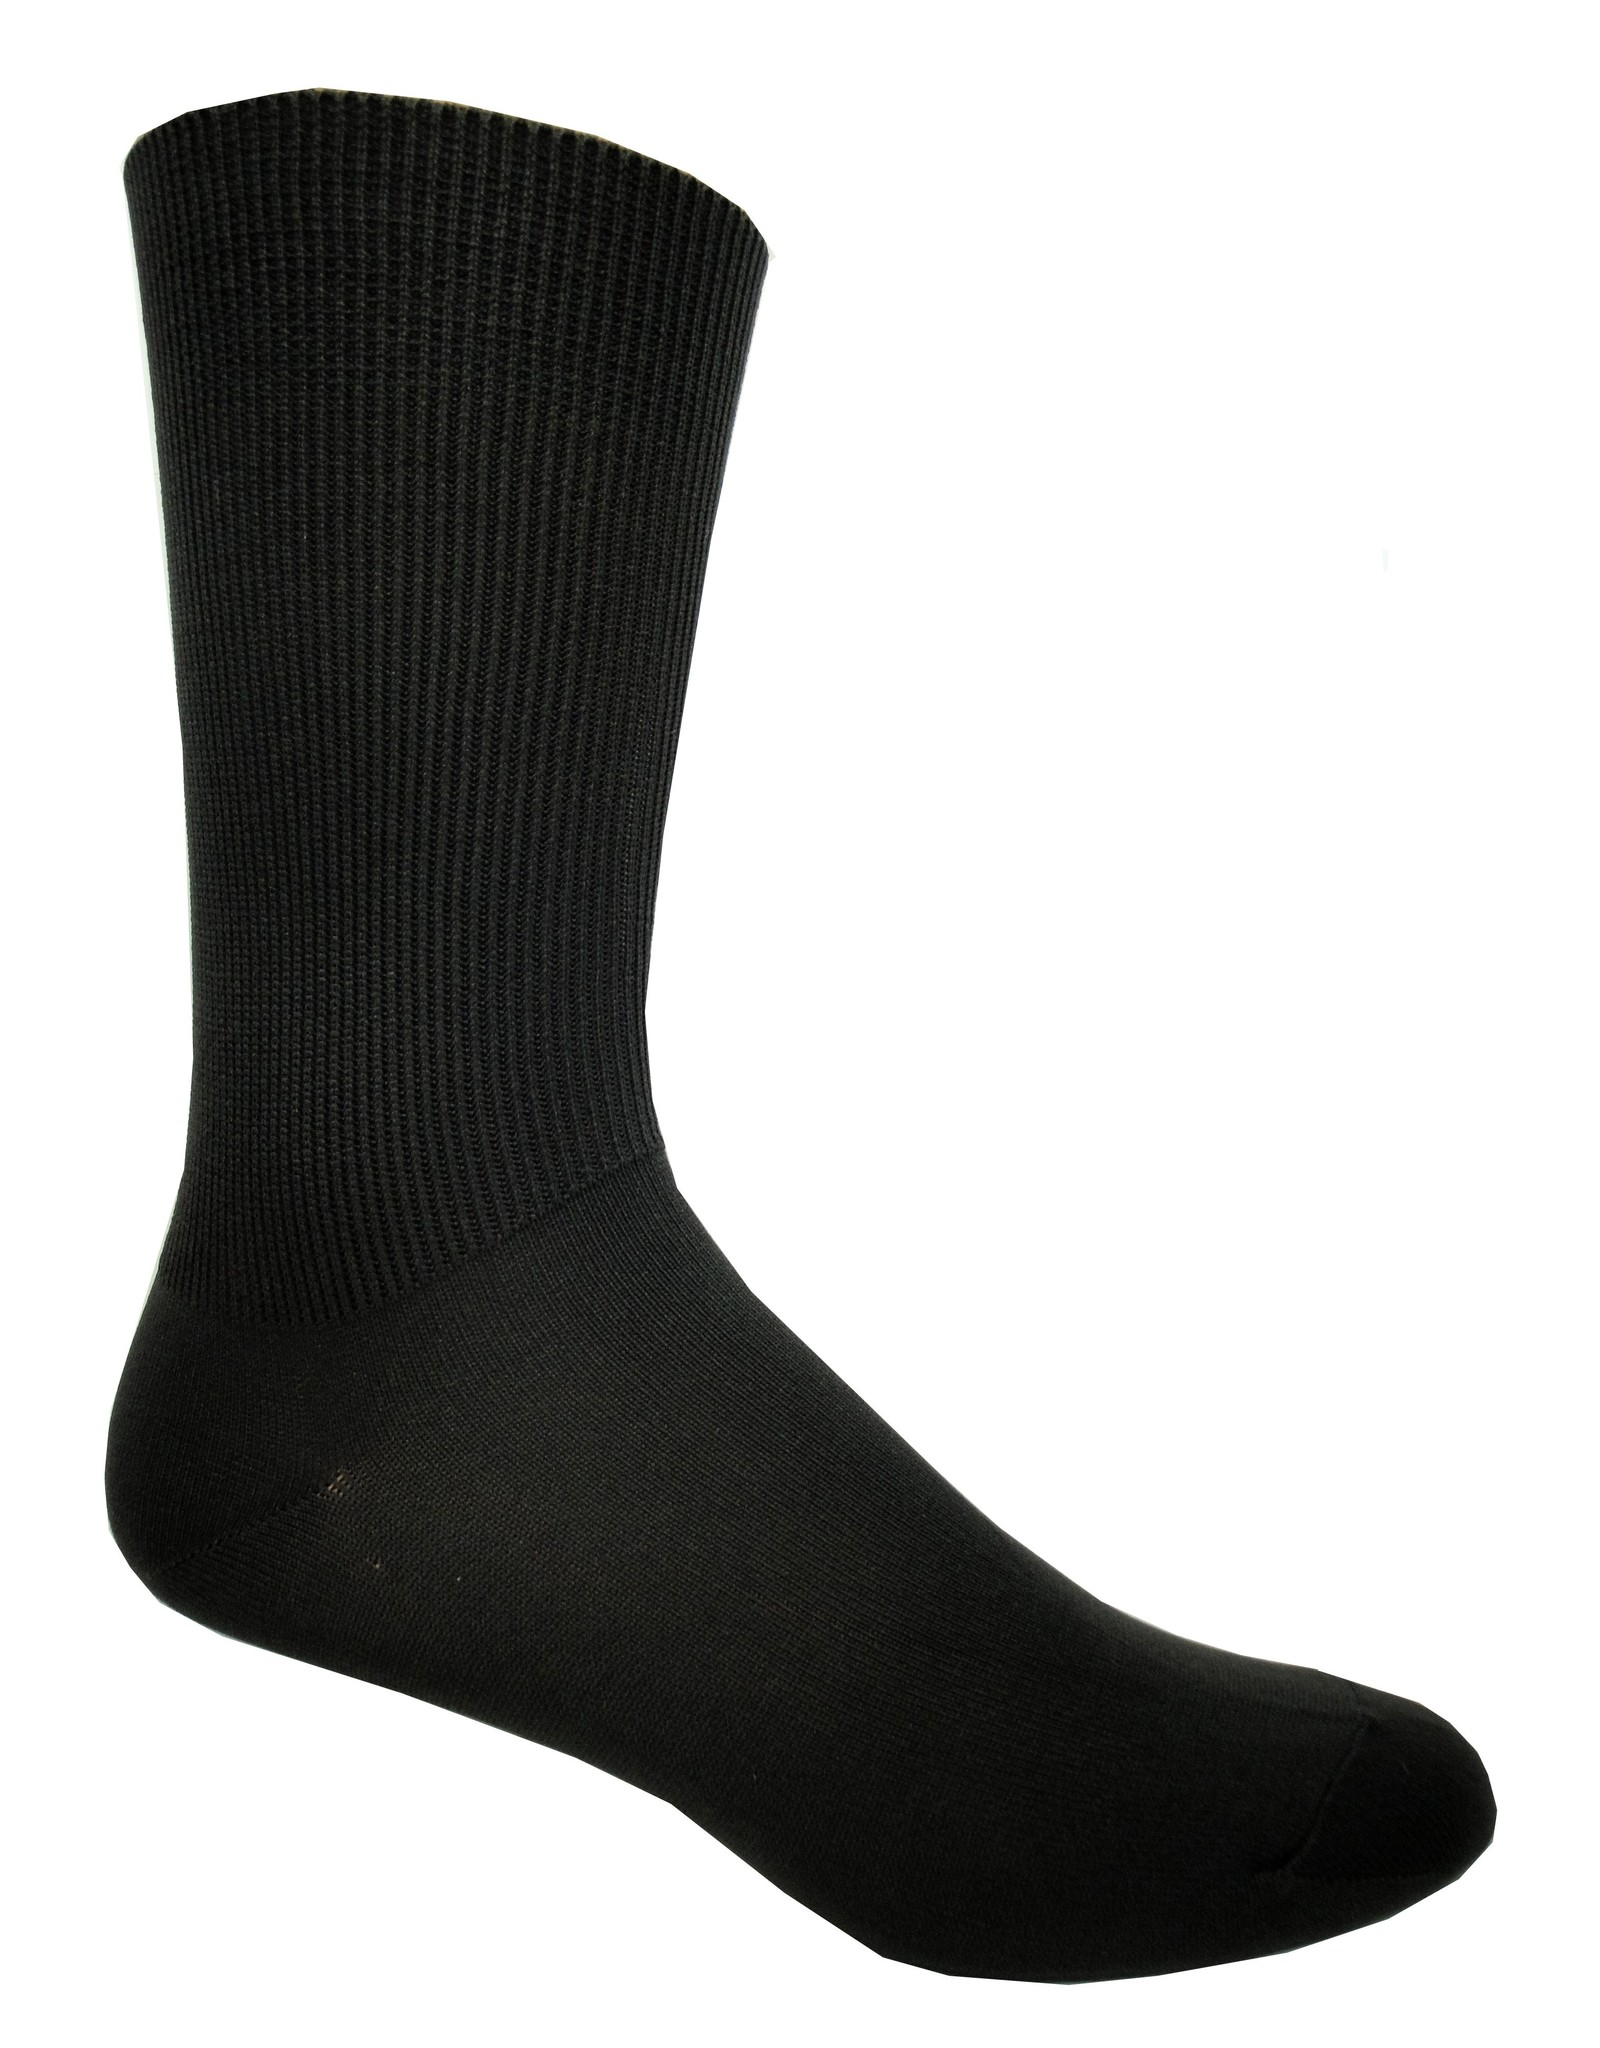 J.B. FIELDS - GREAT SOX ADVENTURE TRAVEL QUICK DRY LINER SOCK